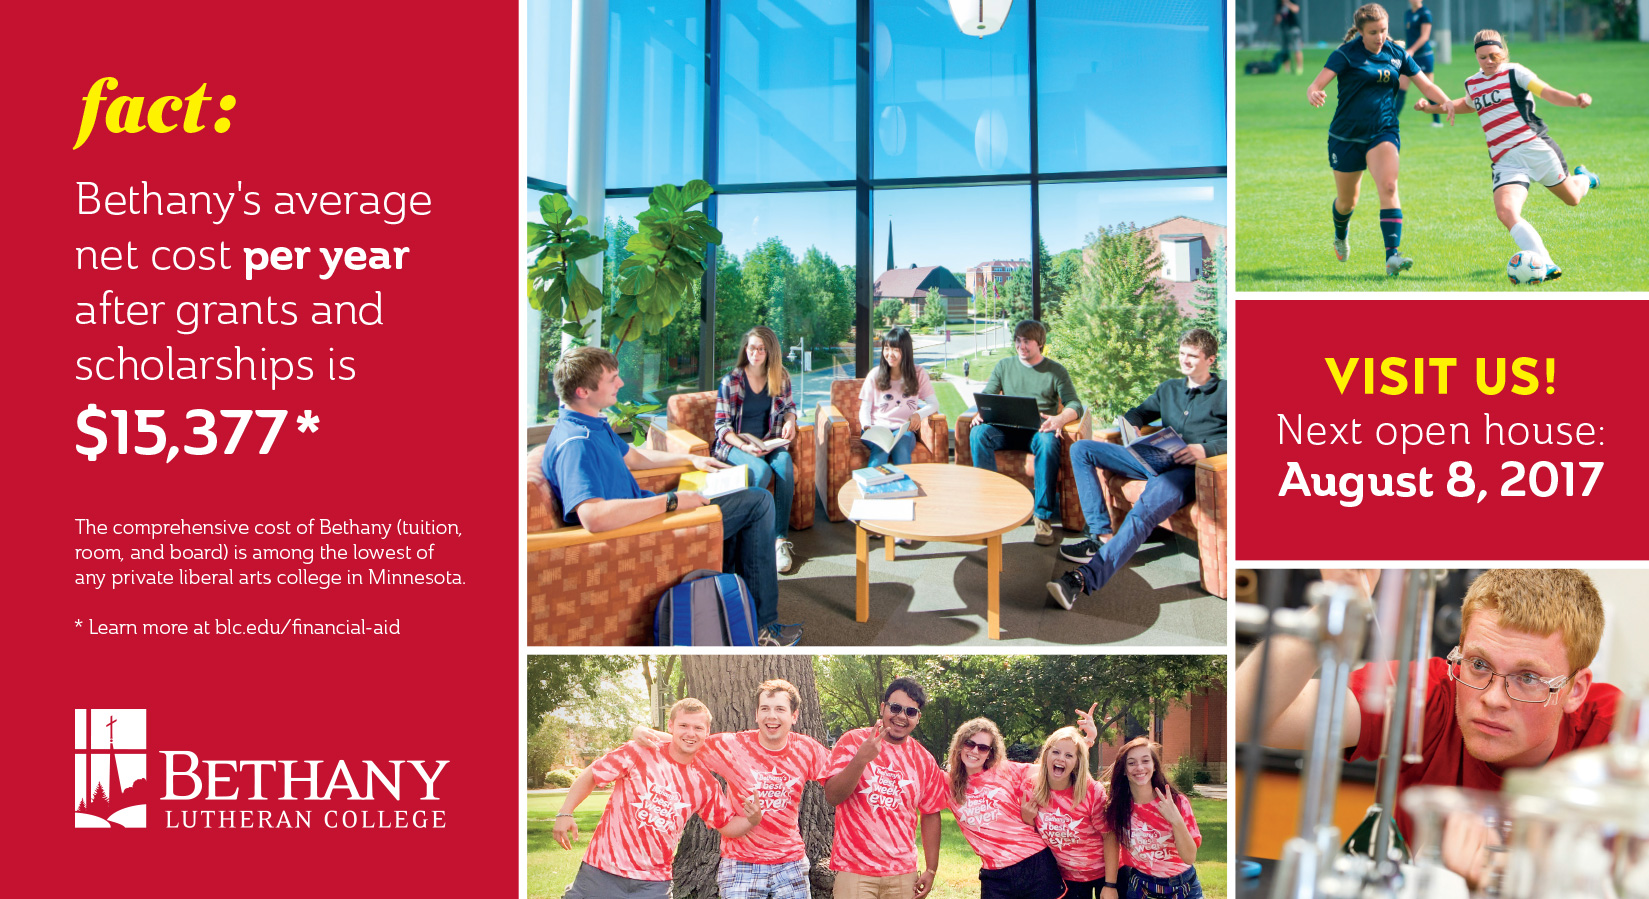 August open house